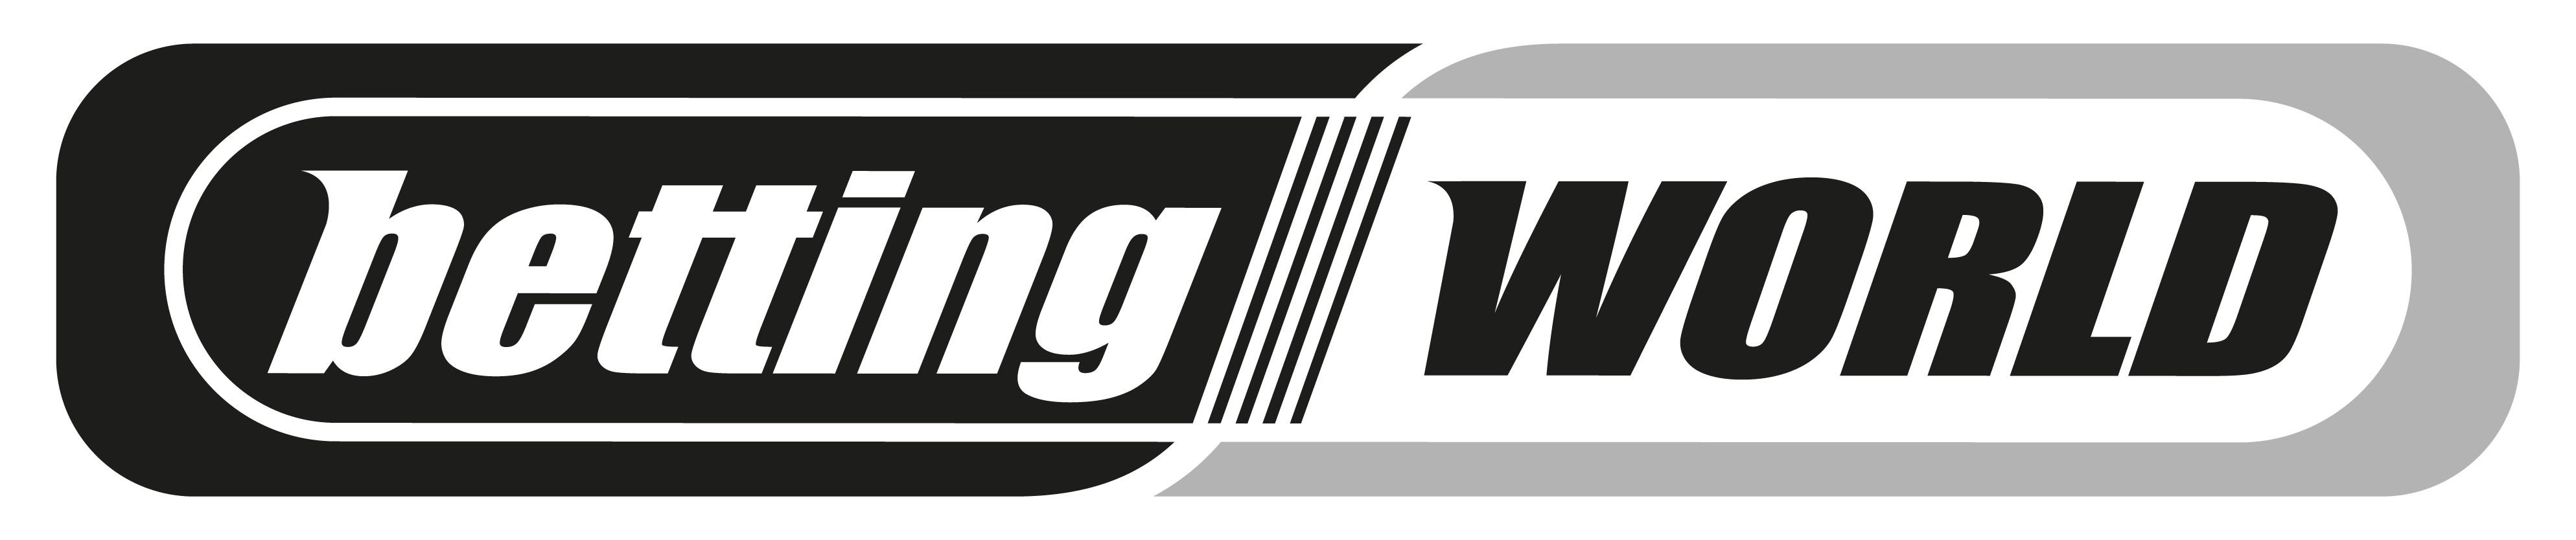 Penquin Logos_Betting World-bw.png